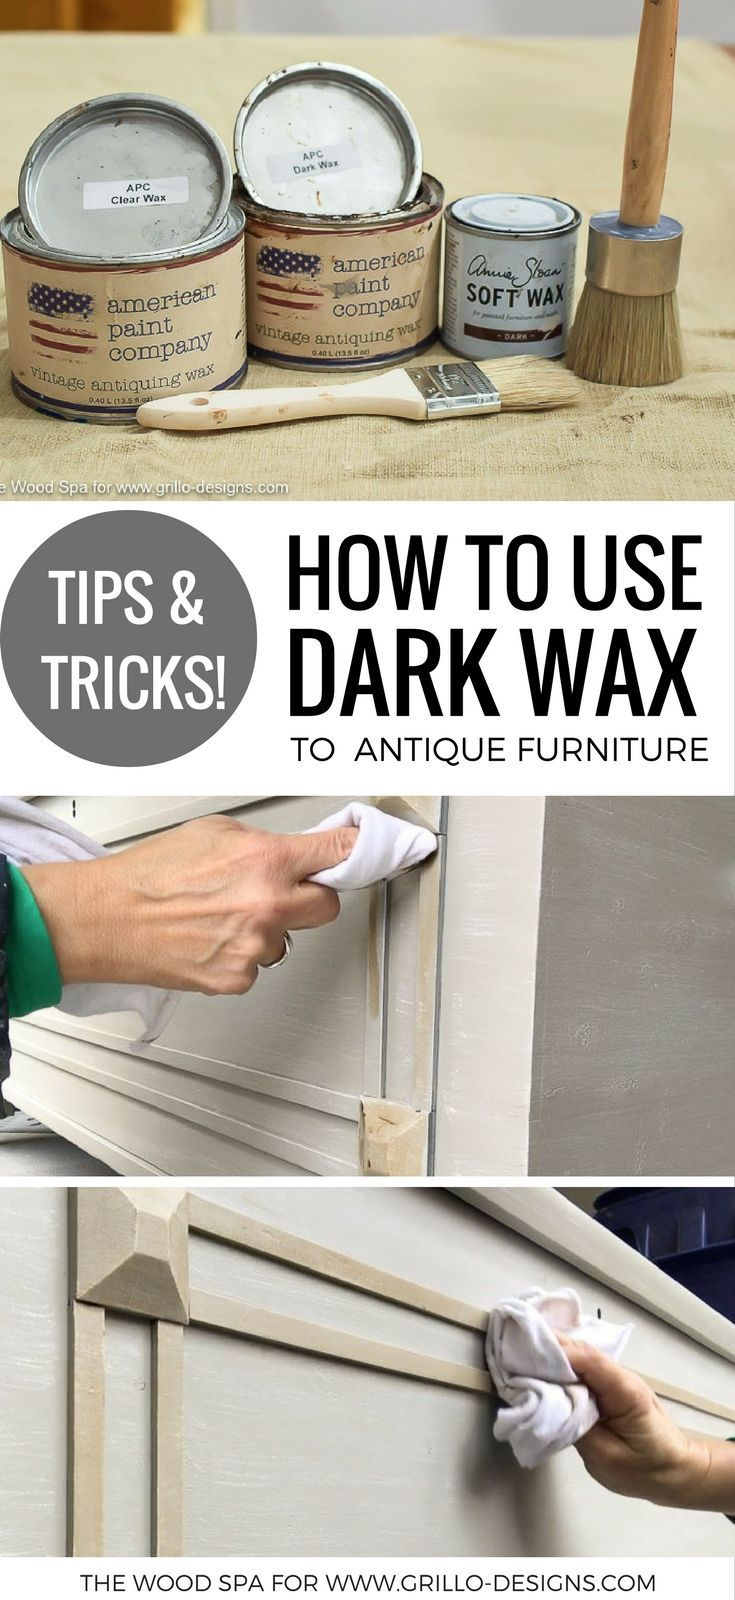 A diy tutorial on how to use dark wax to antique furniture - How To Use Dark Wax To Antique Furniture Dark Wax, Antique